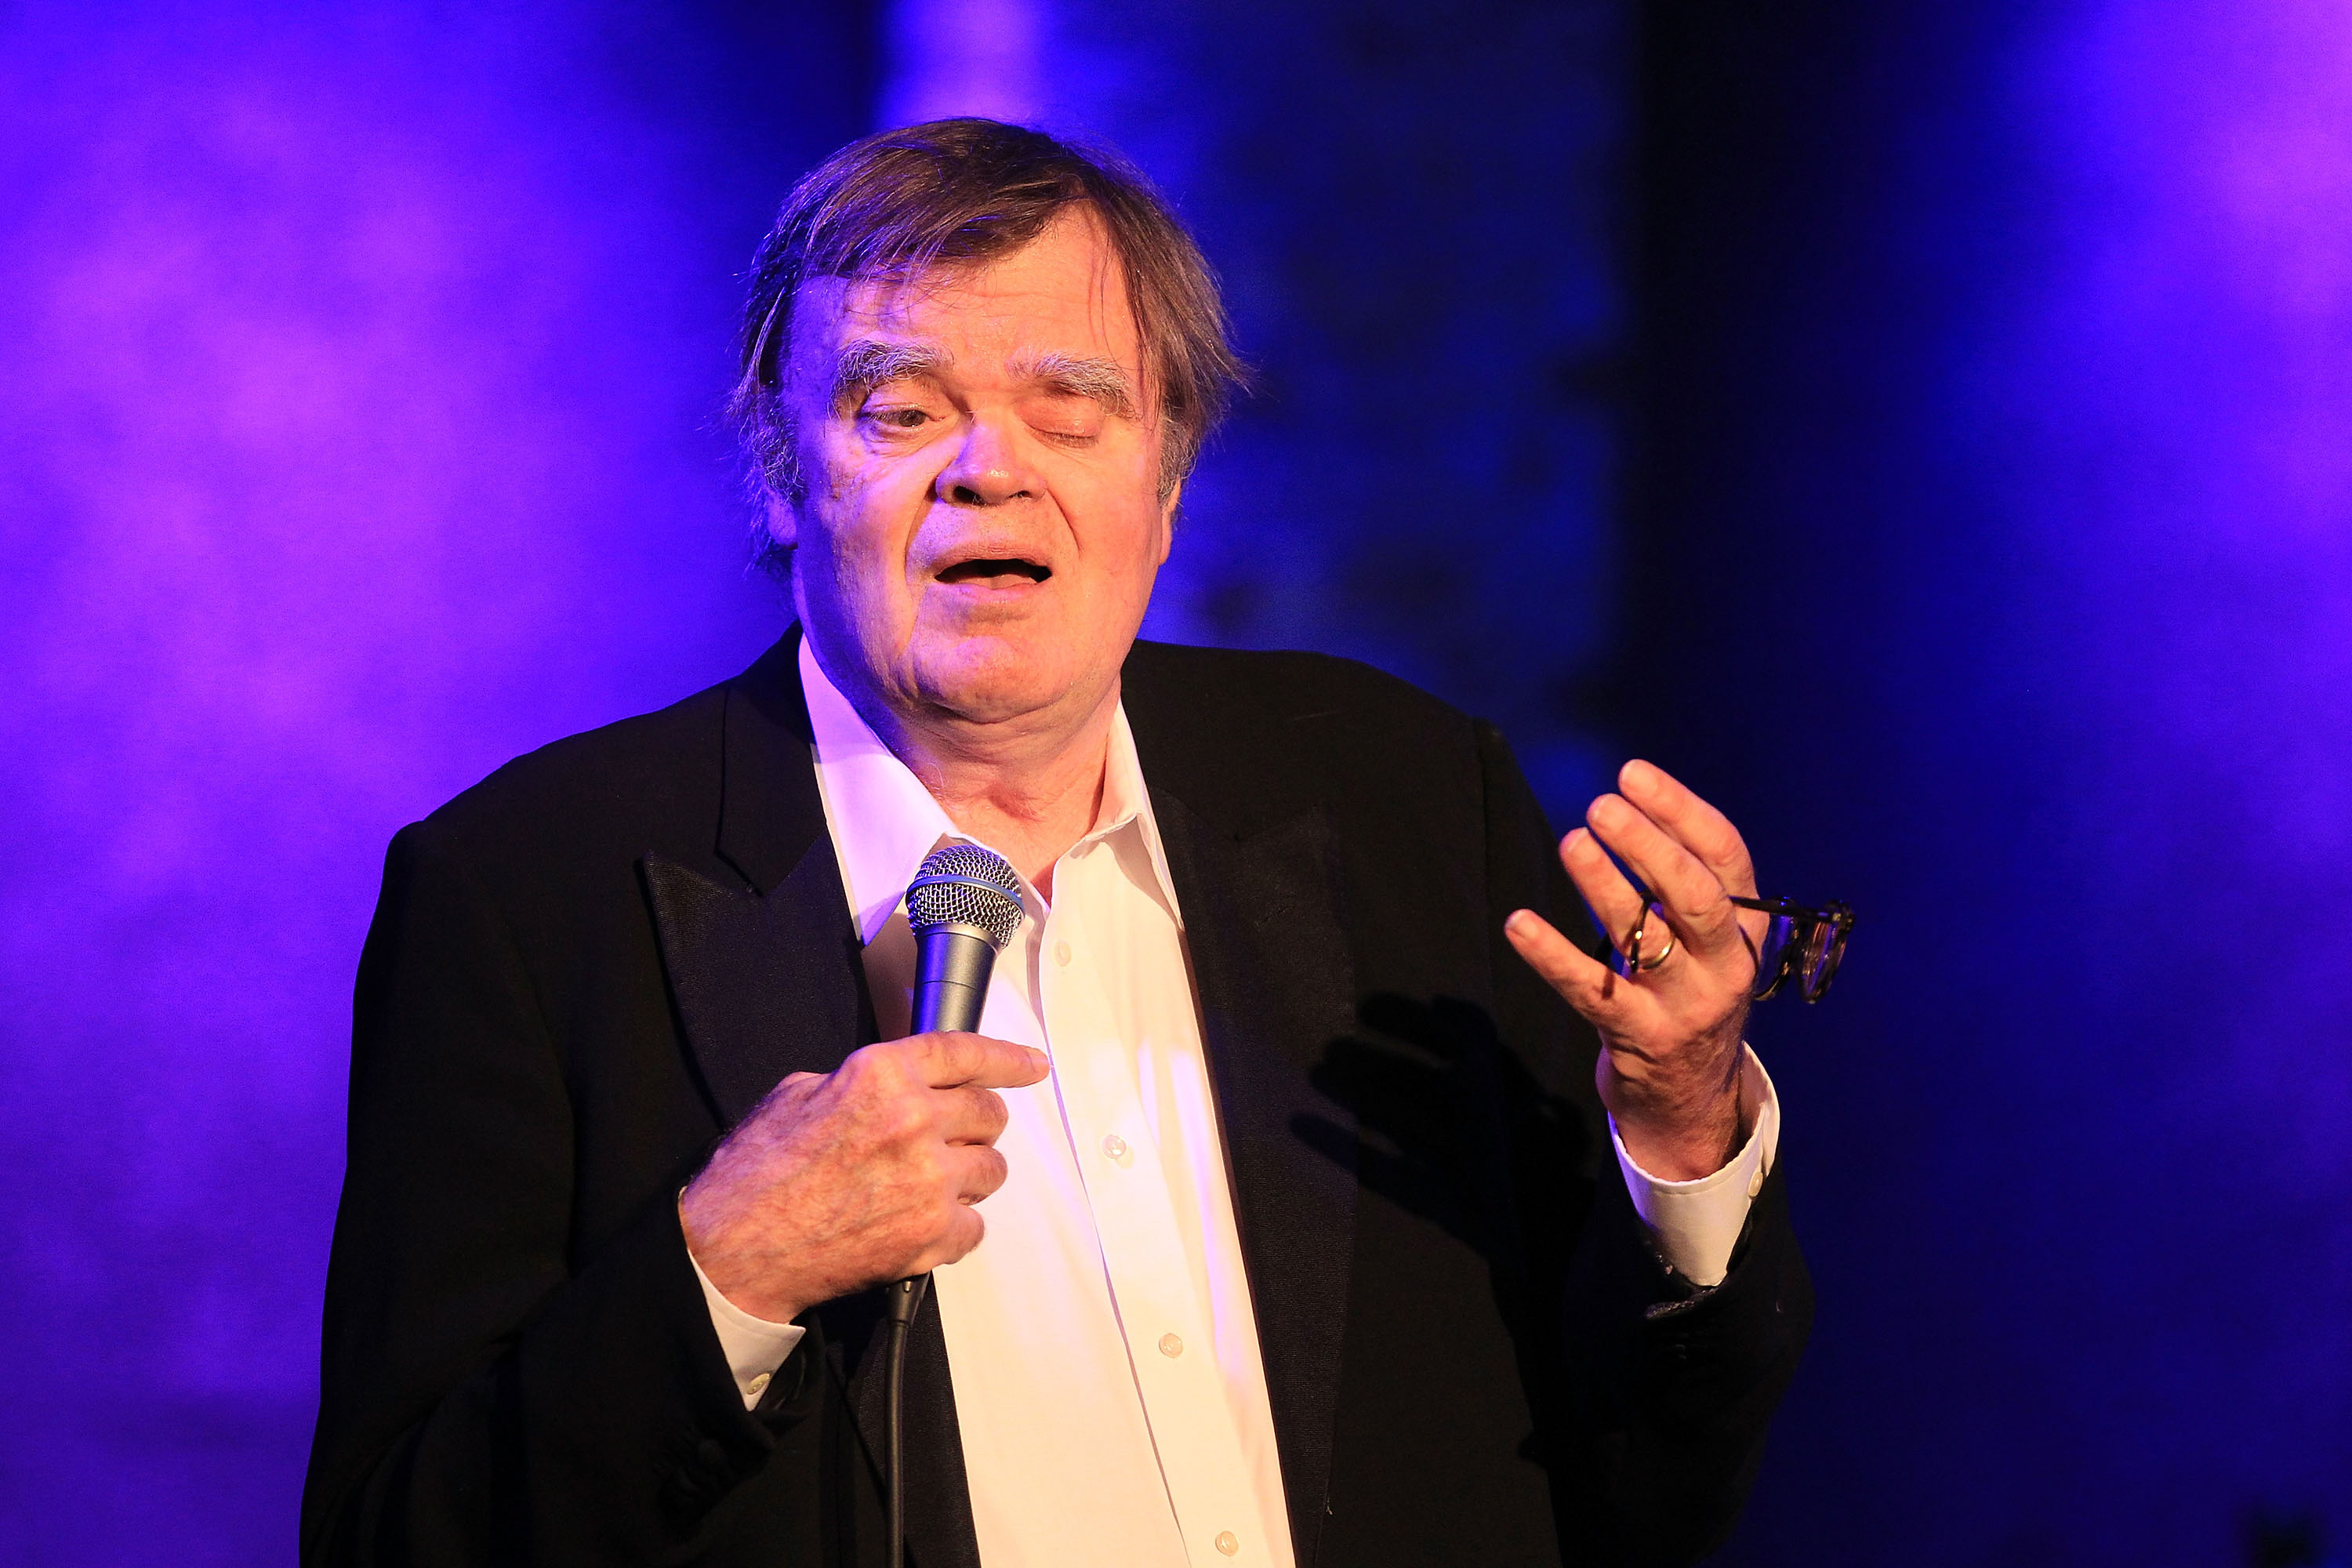 Garrison Keillor performs at City Winery on October 4, 2017 in New York City.